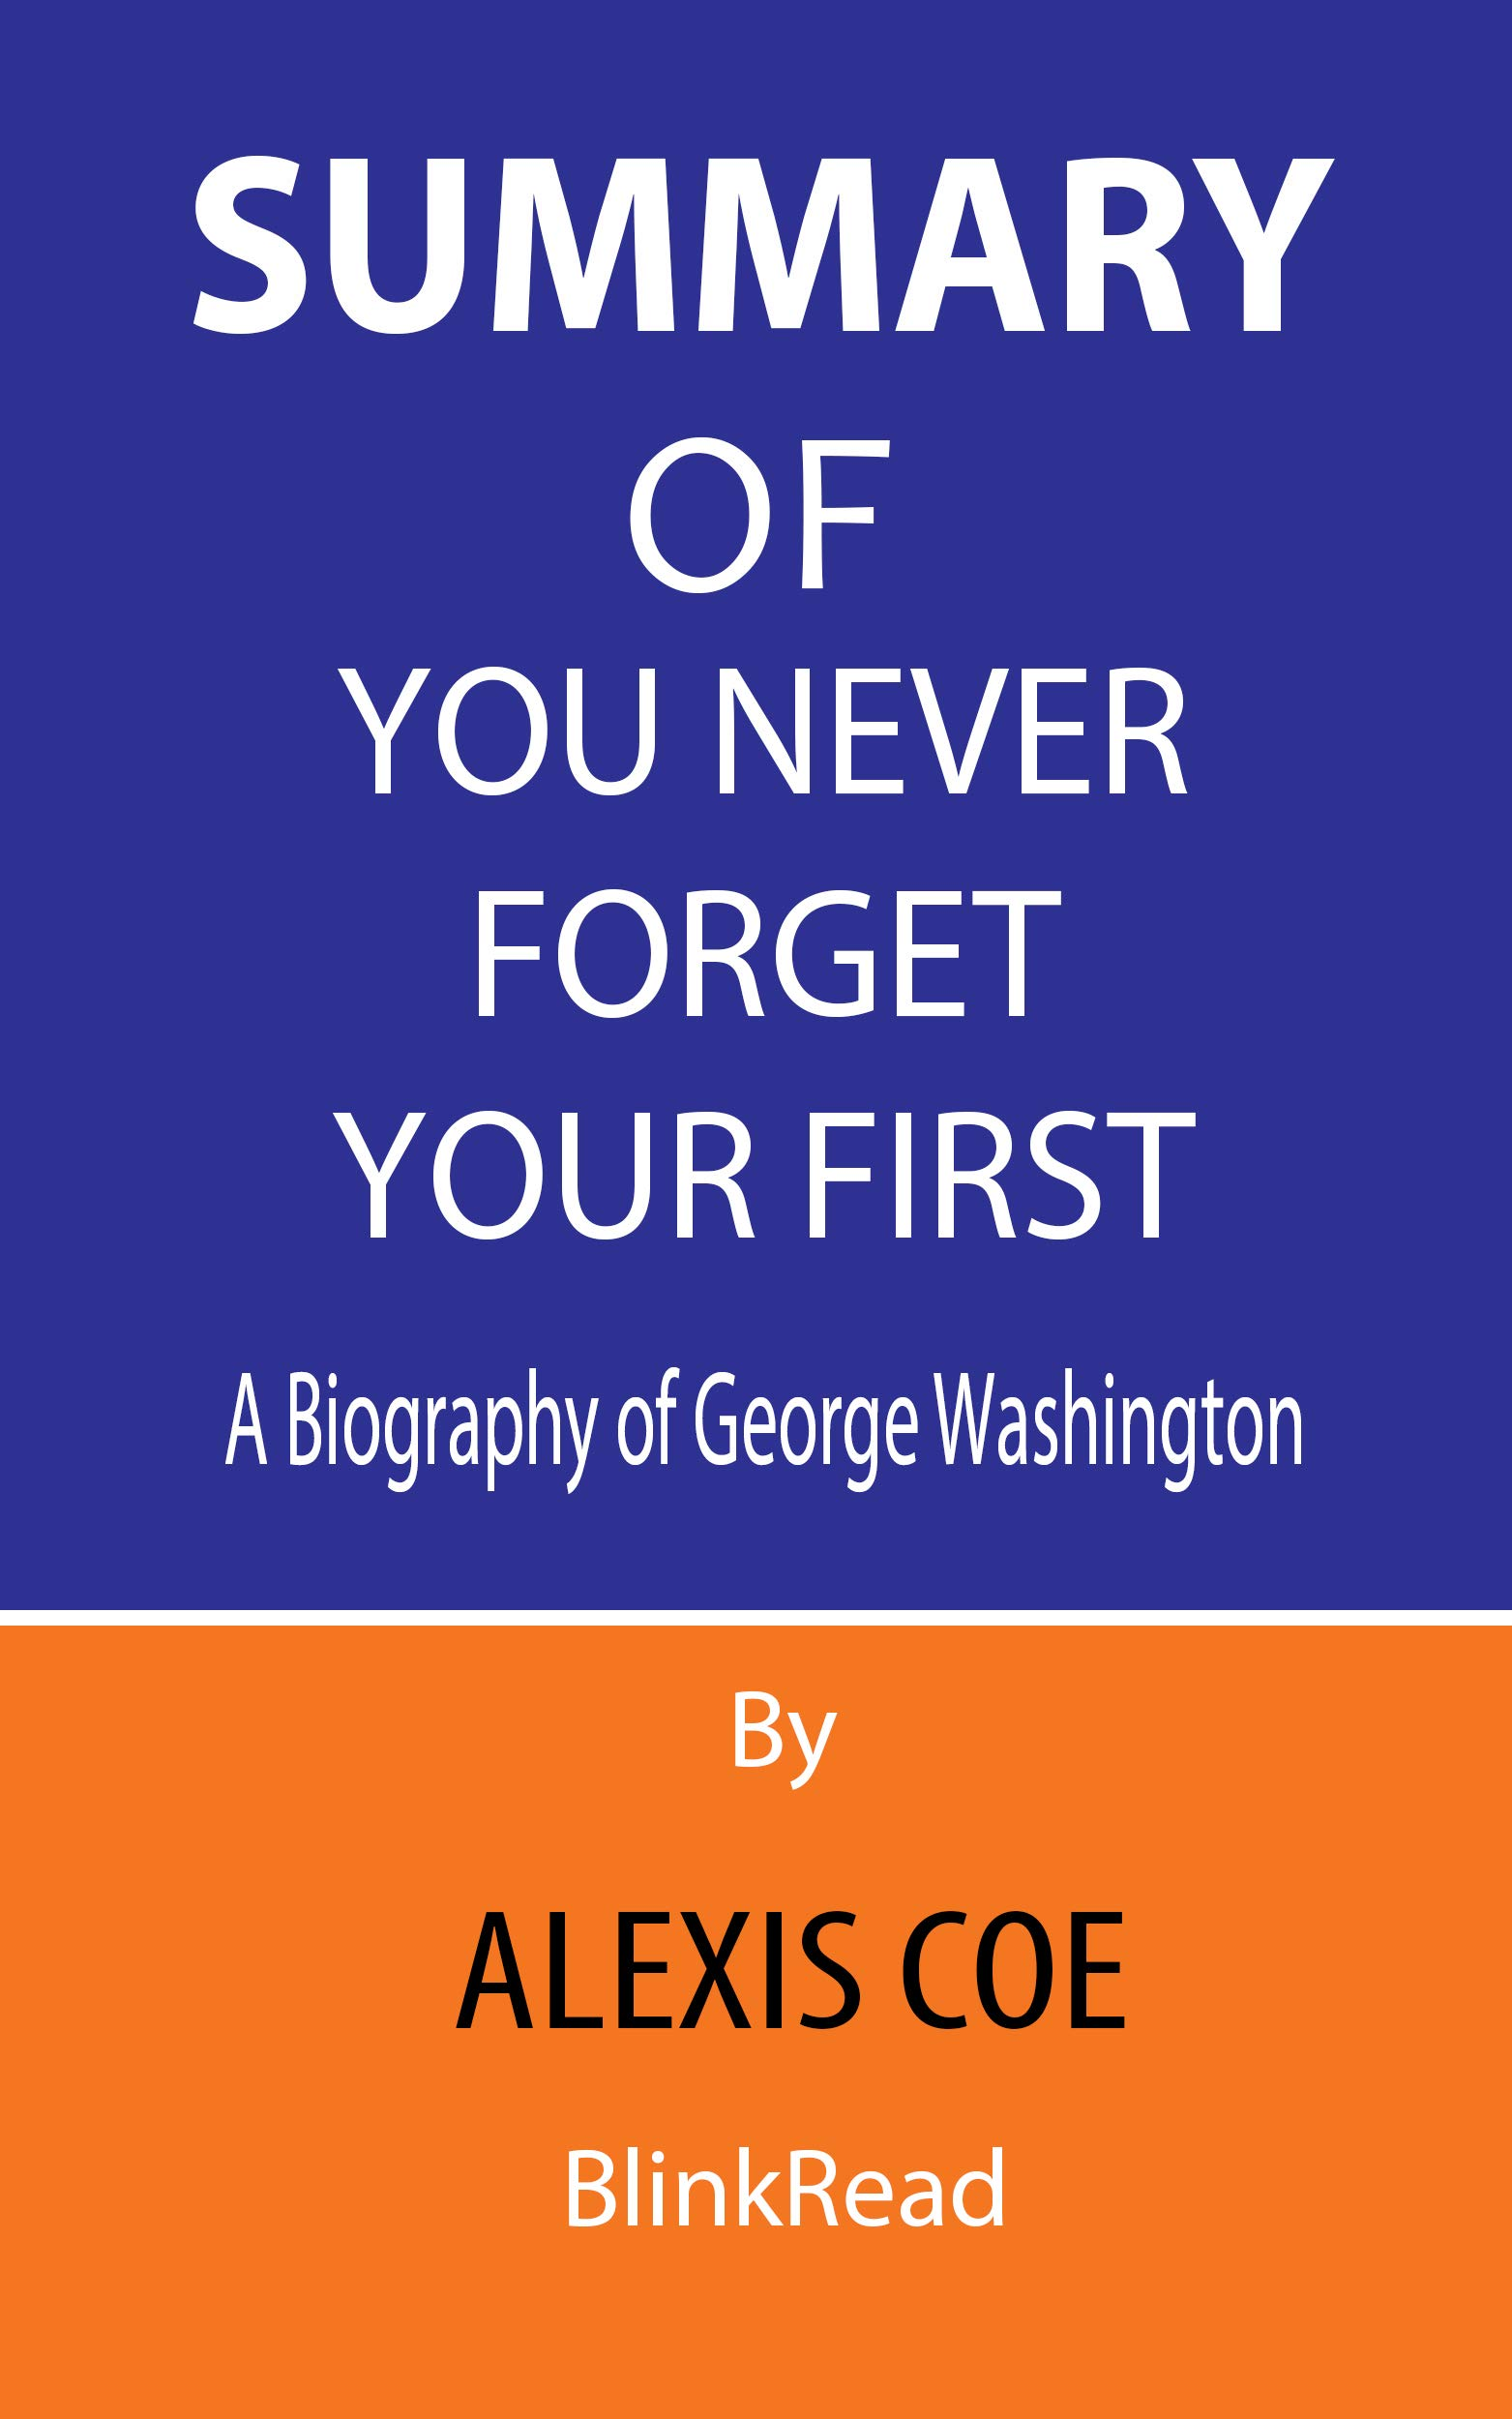 Summary of You Never Forget Your First By Alexis Coe: A Biography of George Washington